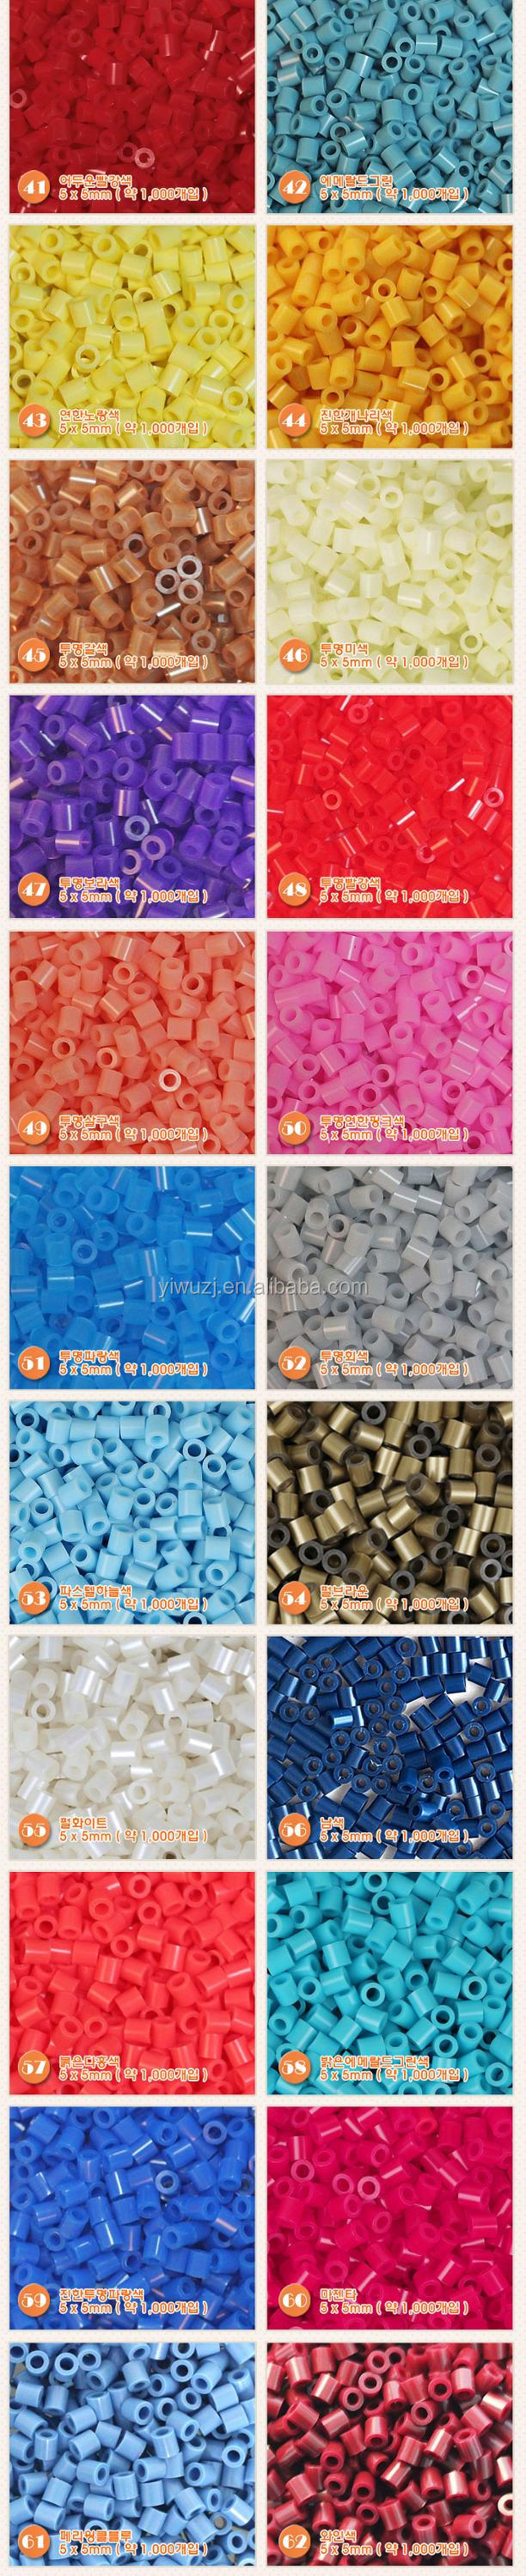 High Quality Kids Plastic Educational DIy hama Perler Beads Toy Kit photo pearls